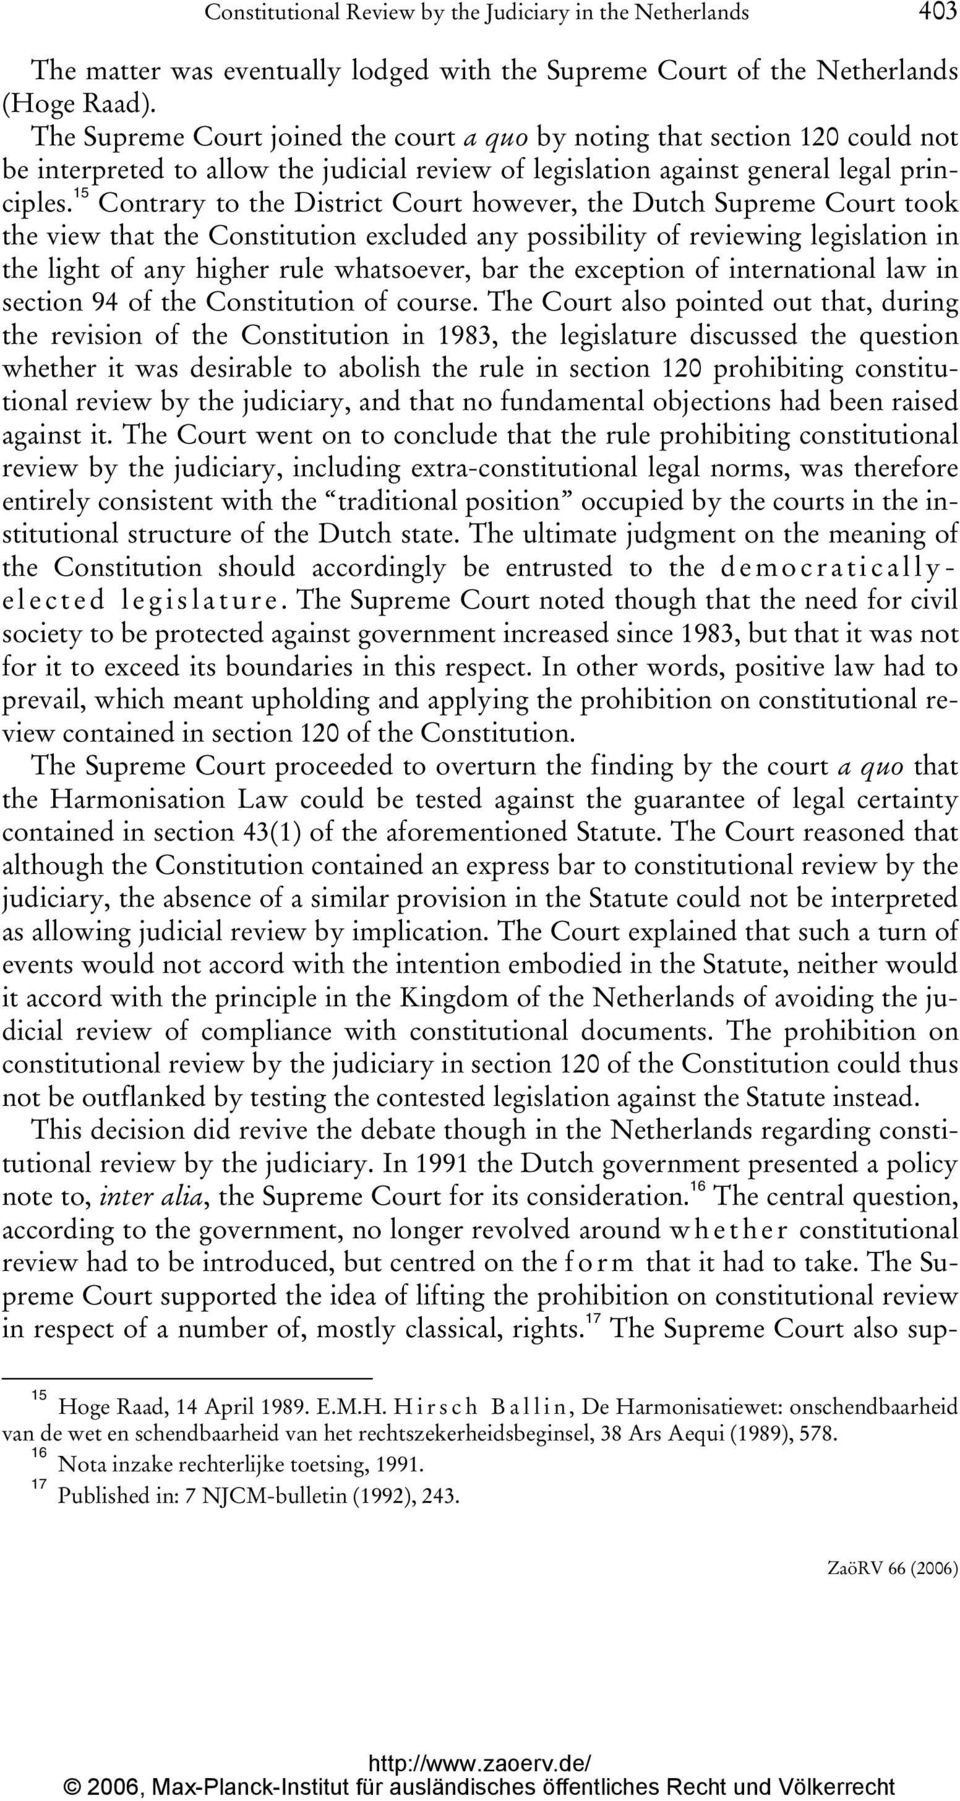 15 Contrary to the District Court however, the Dutch Supreme Court took the view that the Constitution excluded any possibility of reviewing legislation in the light of any higher rule whatsoever,